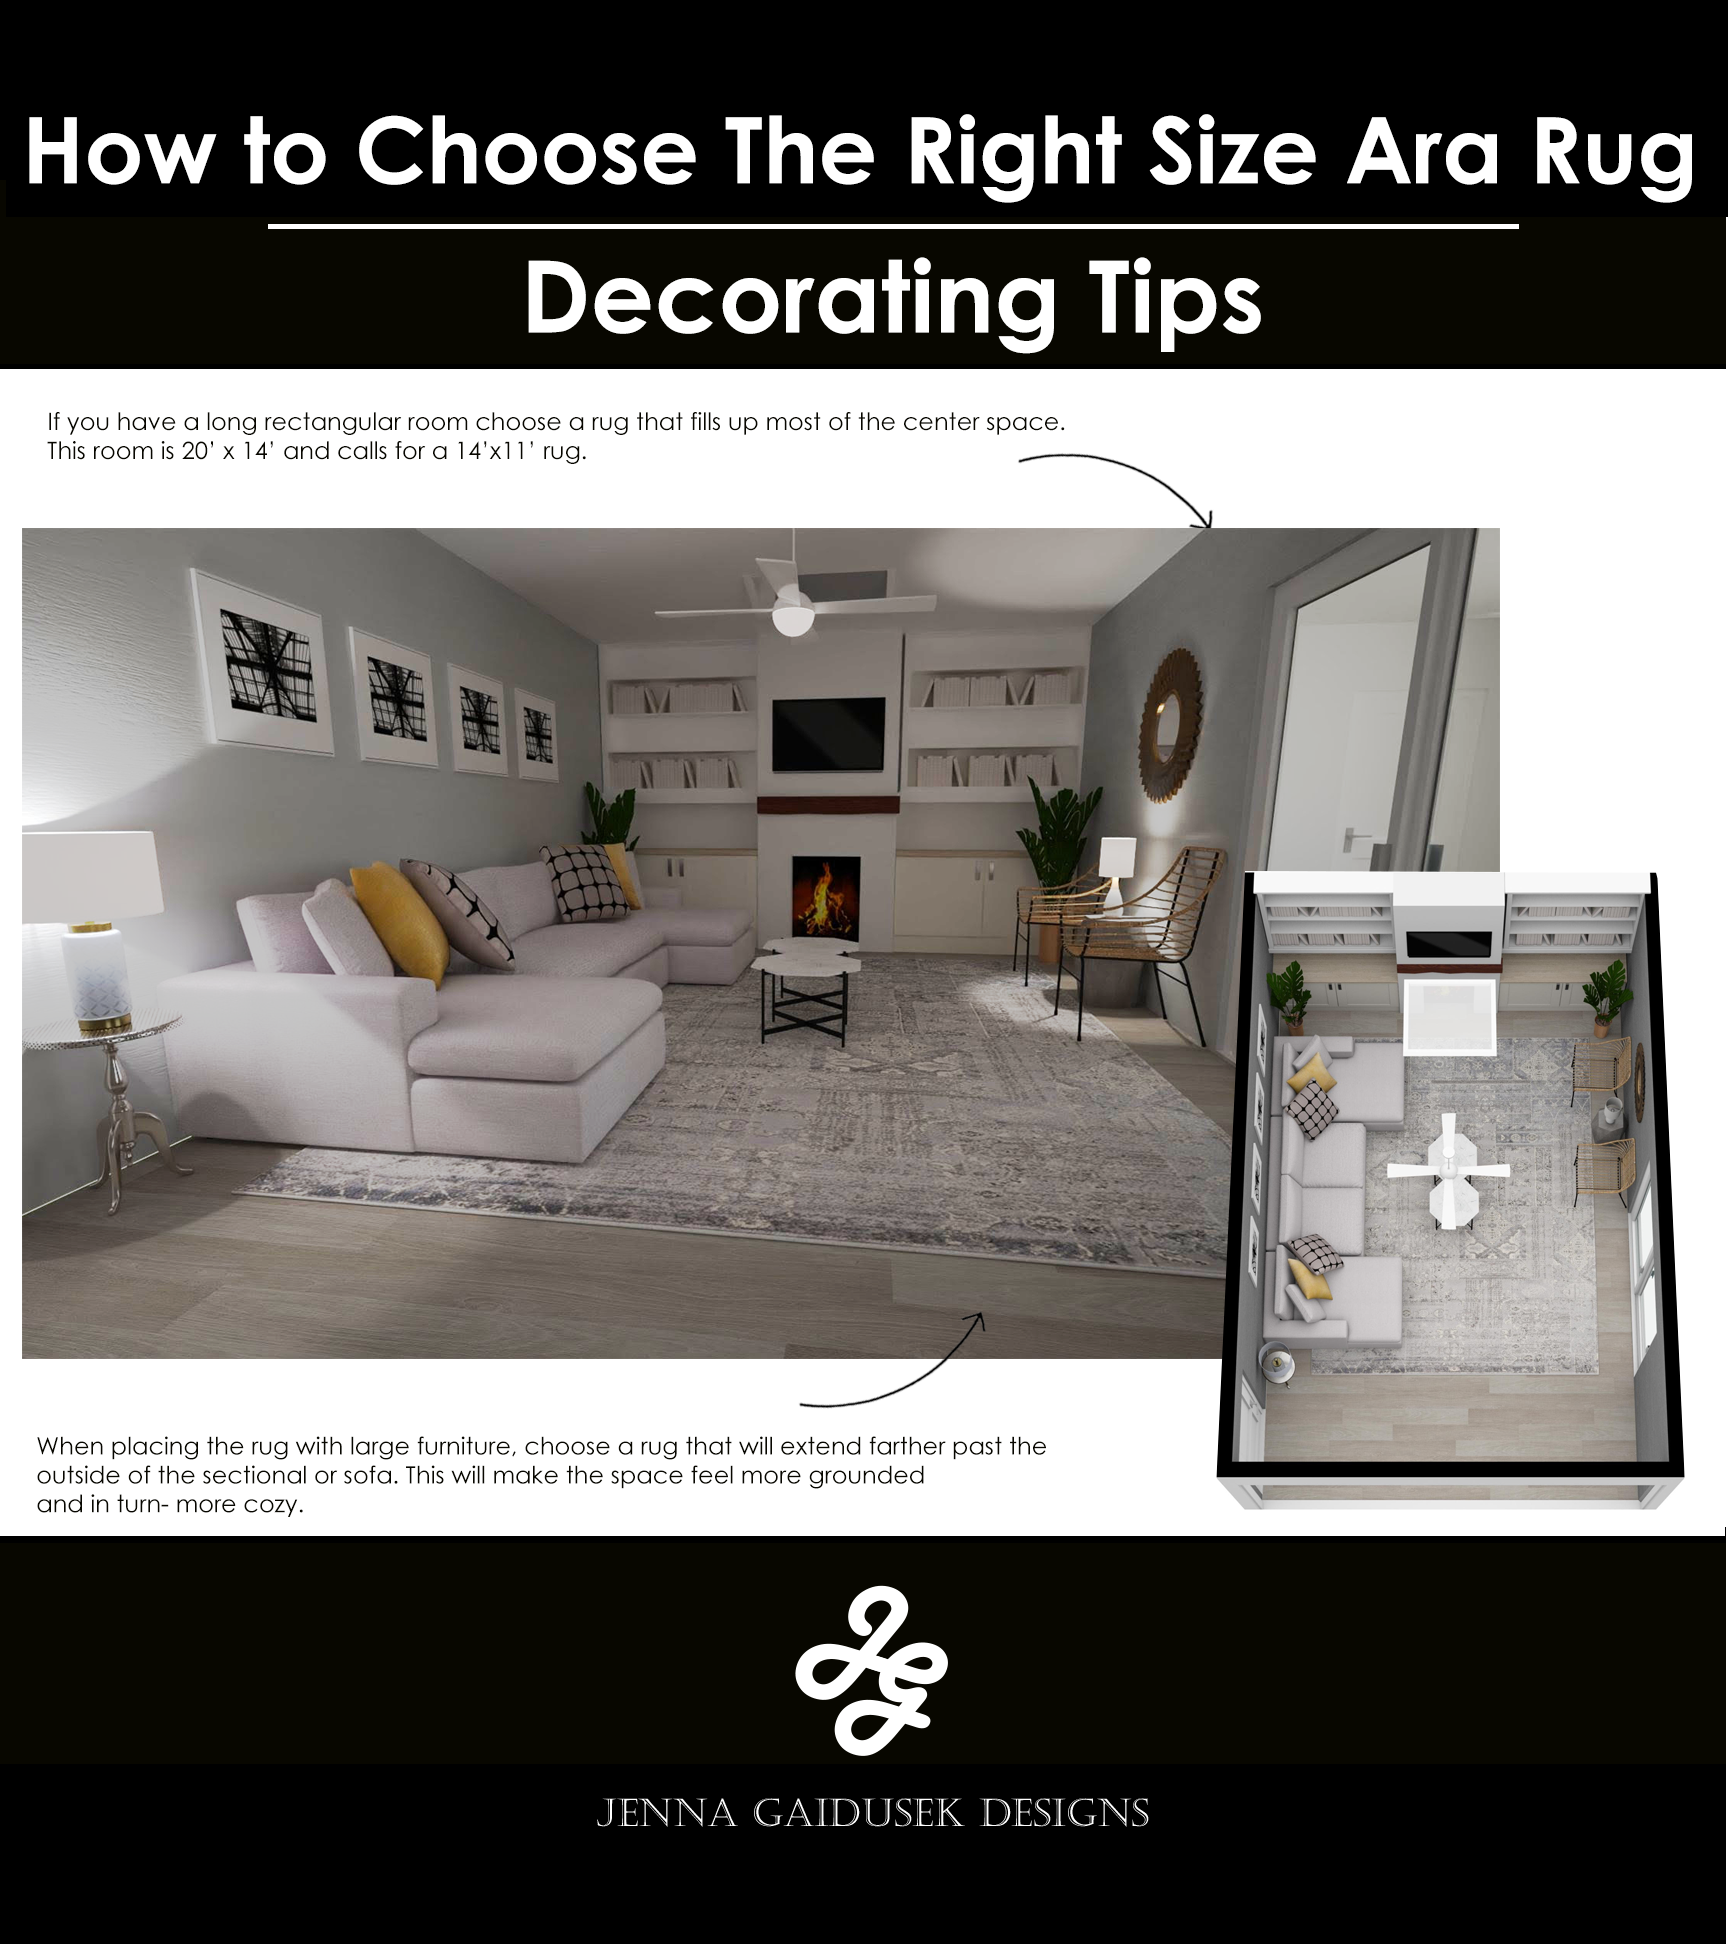 """Jenna Gaidusek Design's Blog - Check out all the hottest decorating tips from my Instagram """"How to Decorate"""" series!"""